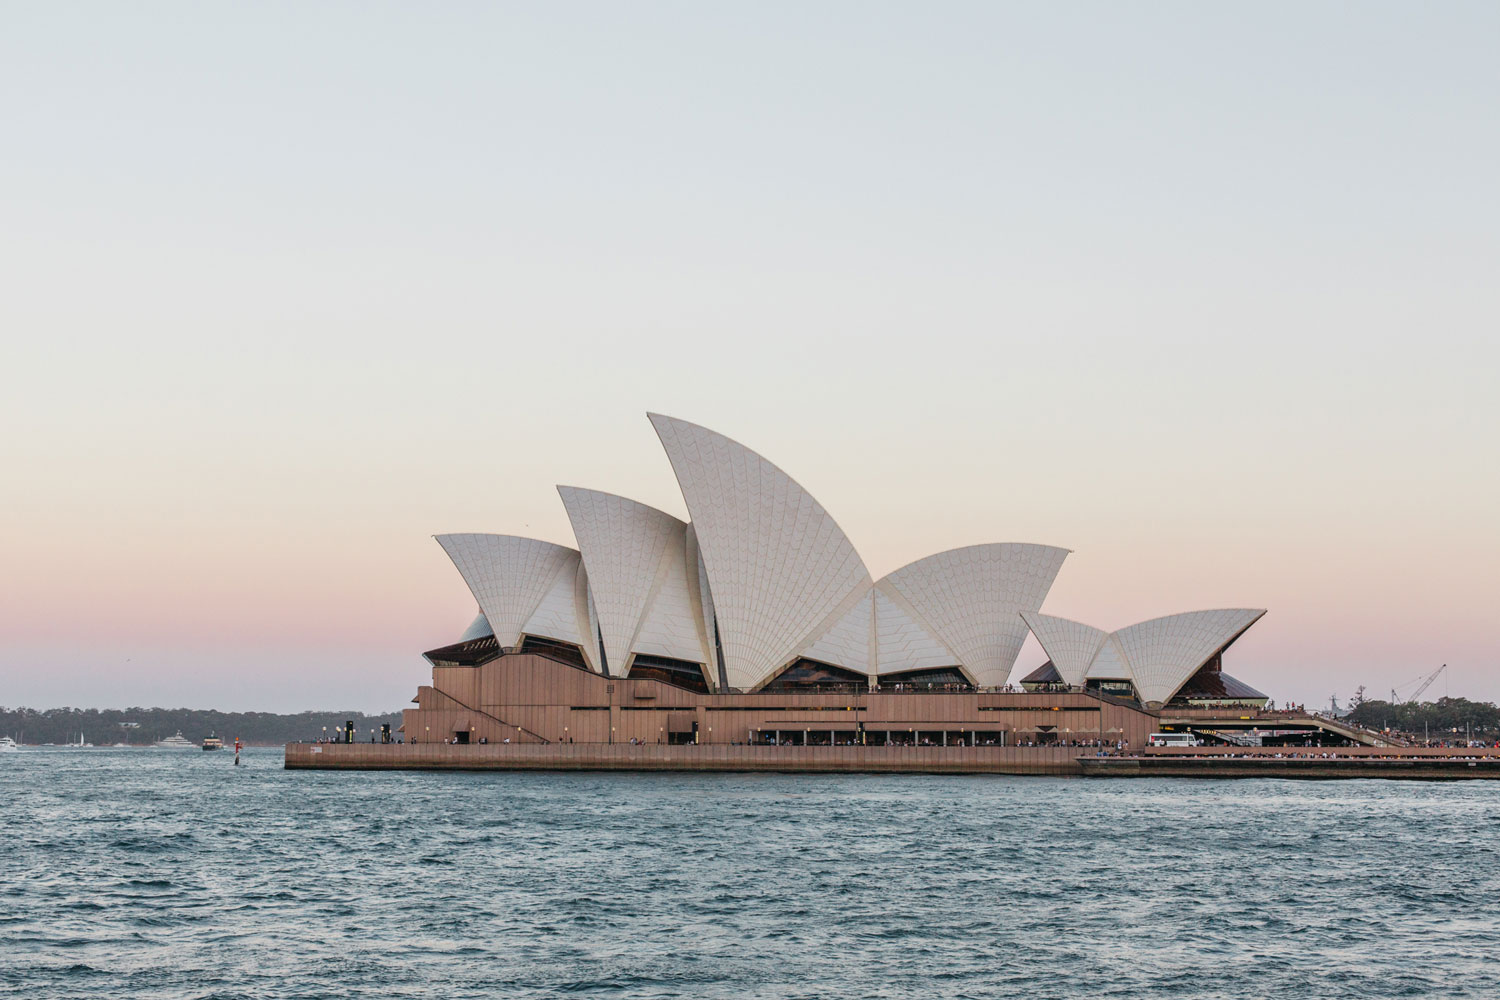 The_Ink_Collective_Creative_Content_Agency_Paris_Editorial_Luxury_Travel_Guide_Review_Sydney_Australia_4.JPG